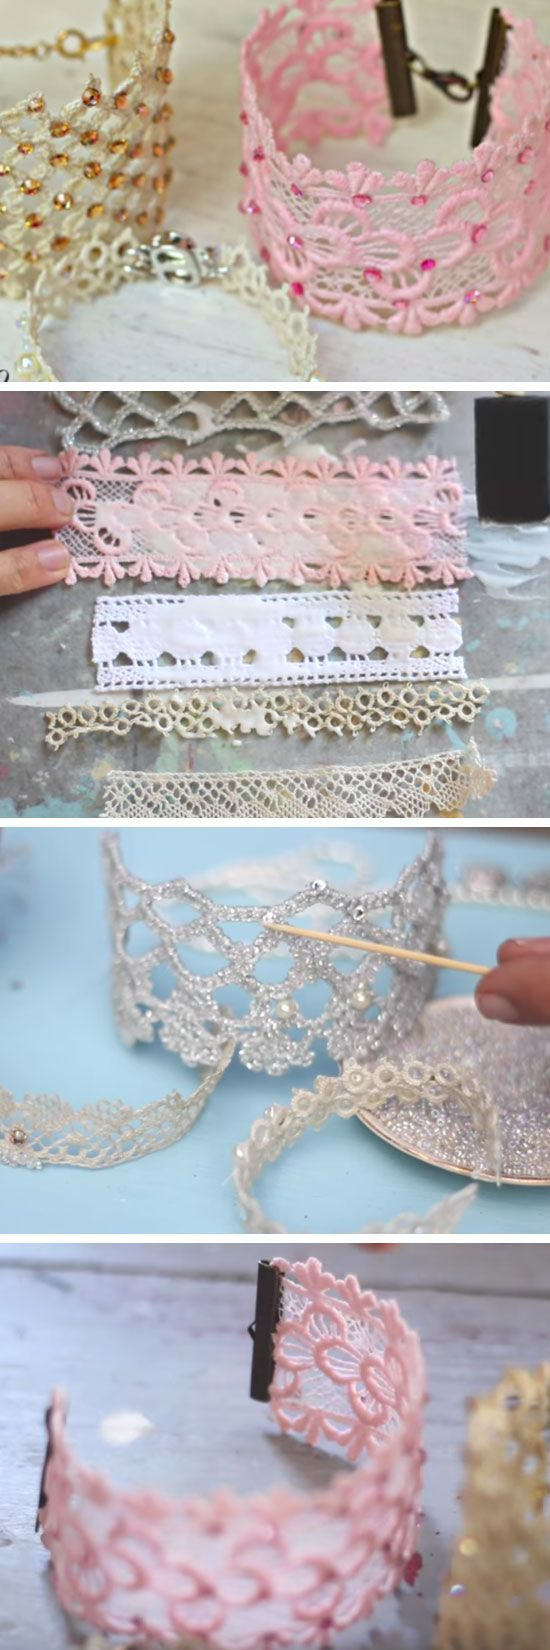 DIY Lace Jewelry | DIY Christmas Gifts for Mom | Easy Holiday Gift Ideas for Grandma #DIYChristmas